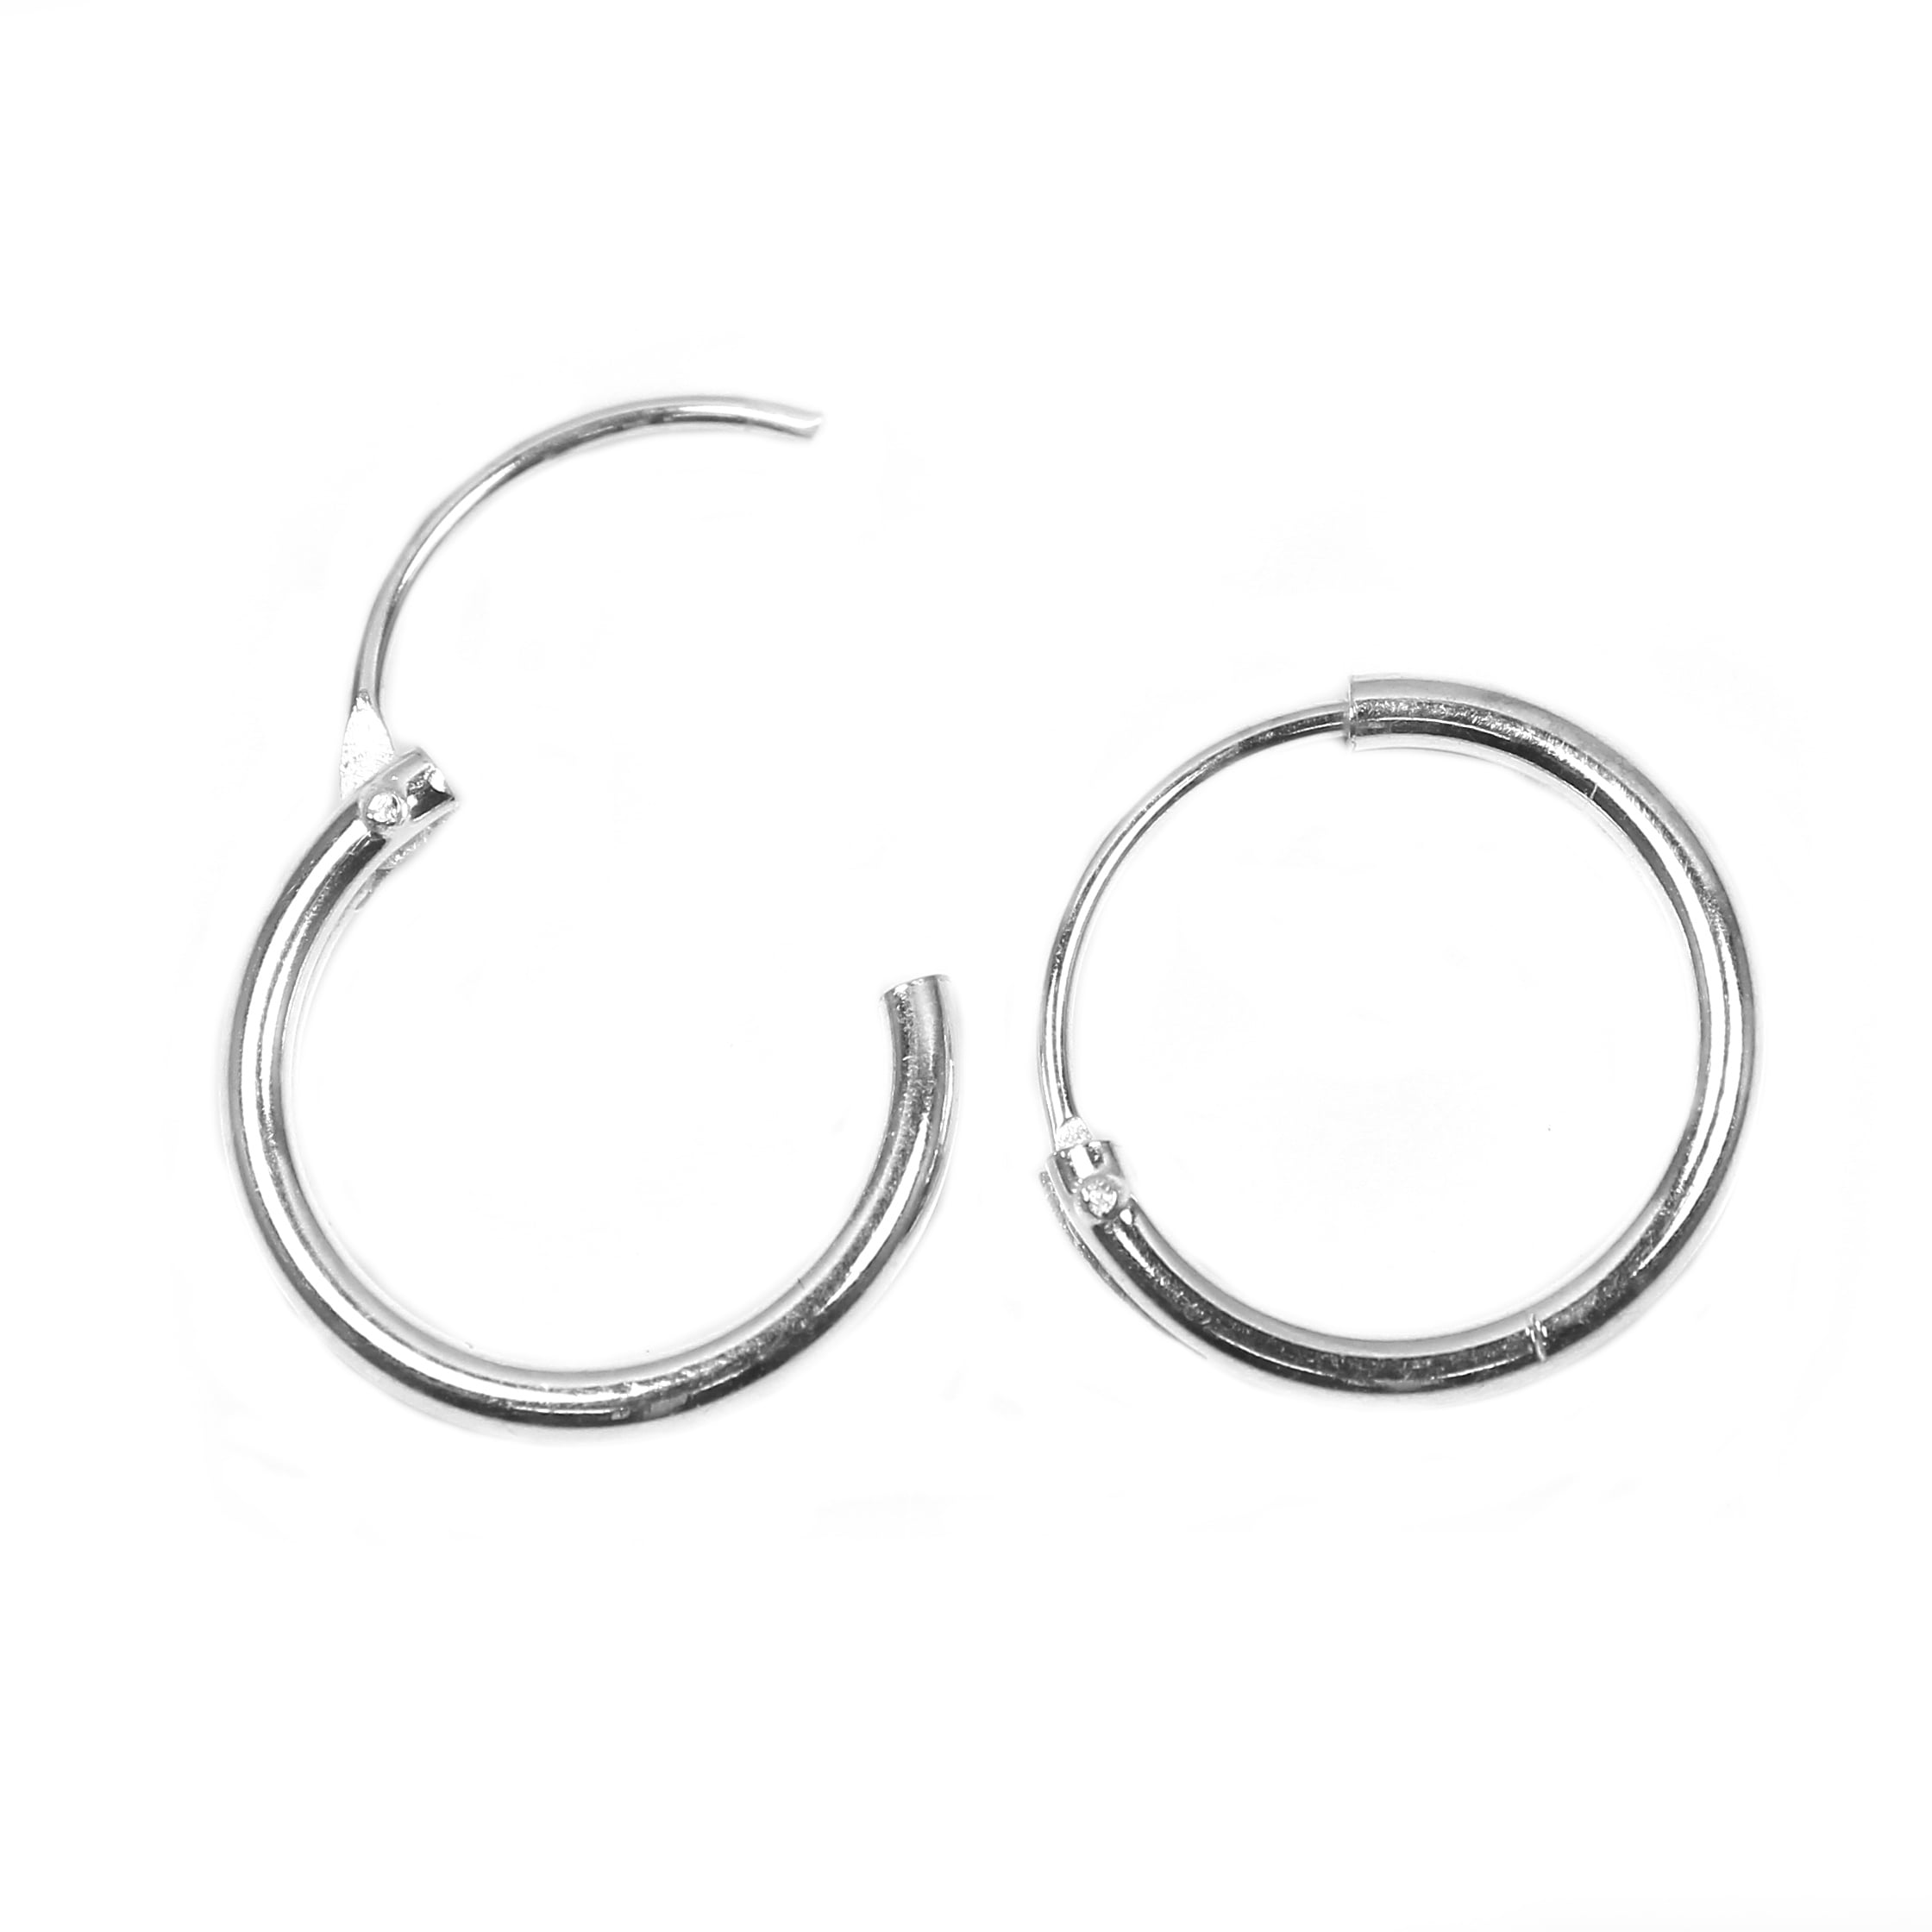 Sterling silver hoop earring 10 mm across